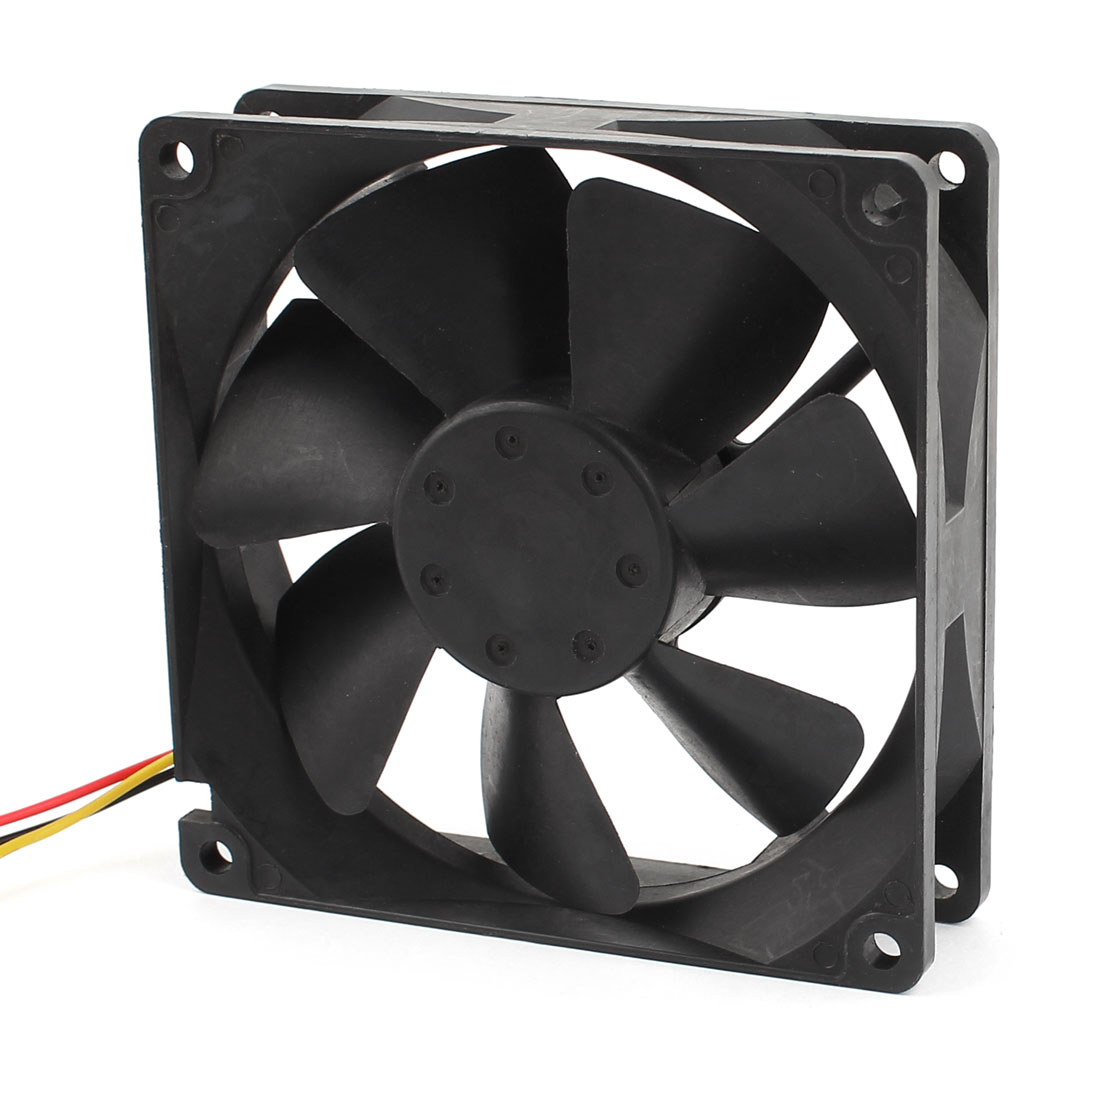 DC 12V 0.43A 90mm x 25mm 3Pin Cooling Fan for Computer Case CPU Cooler